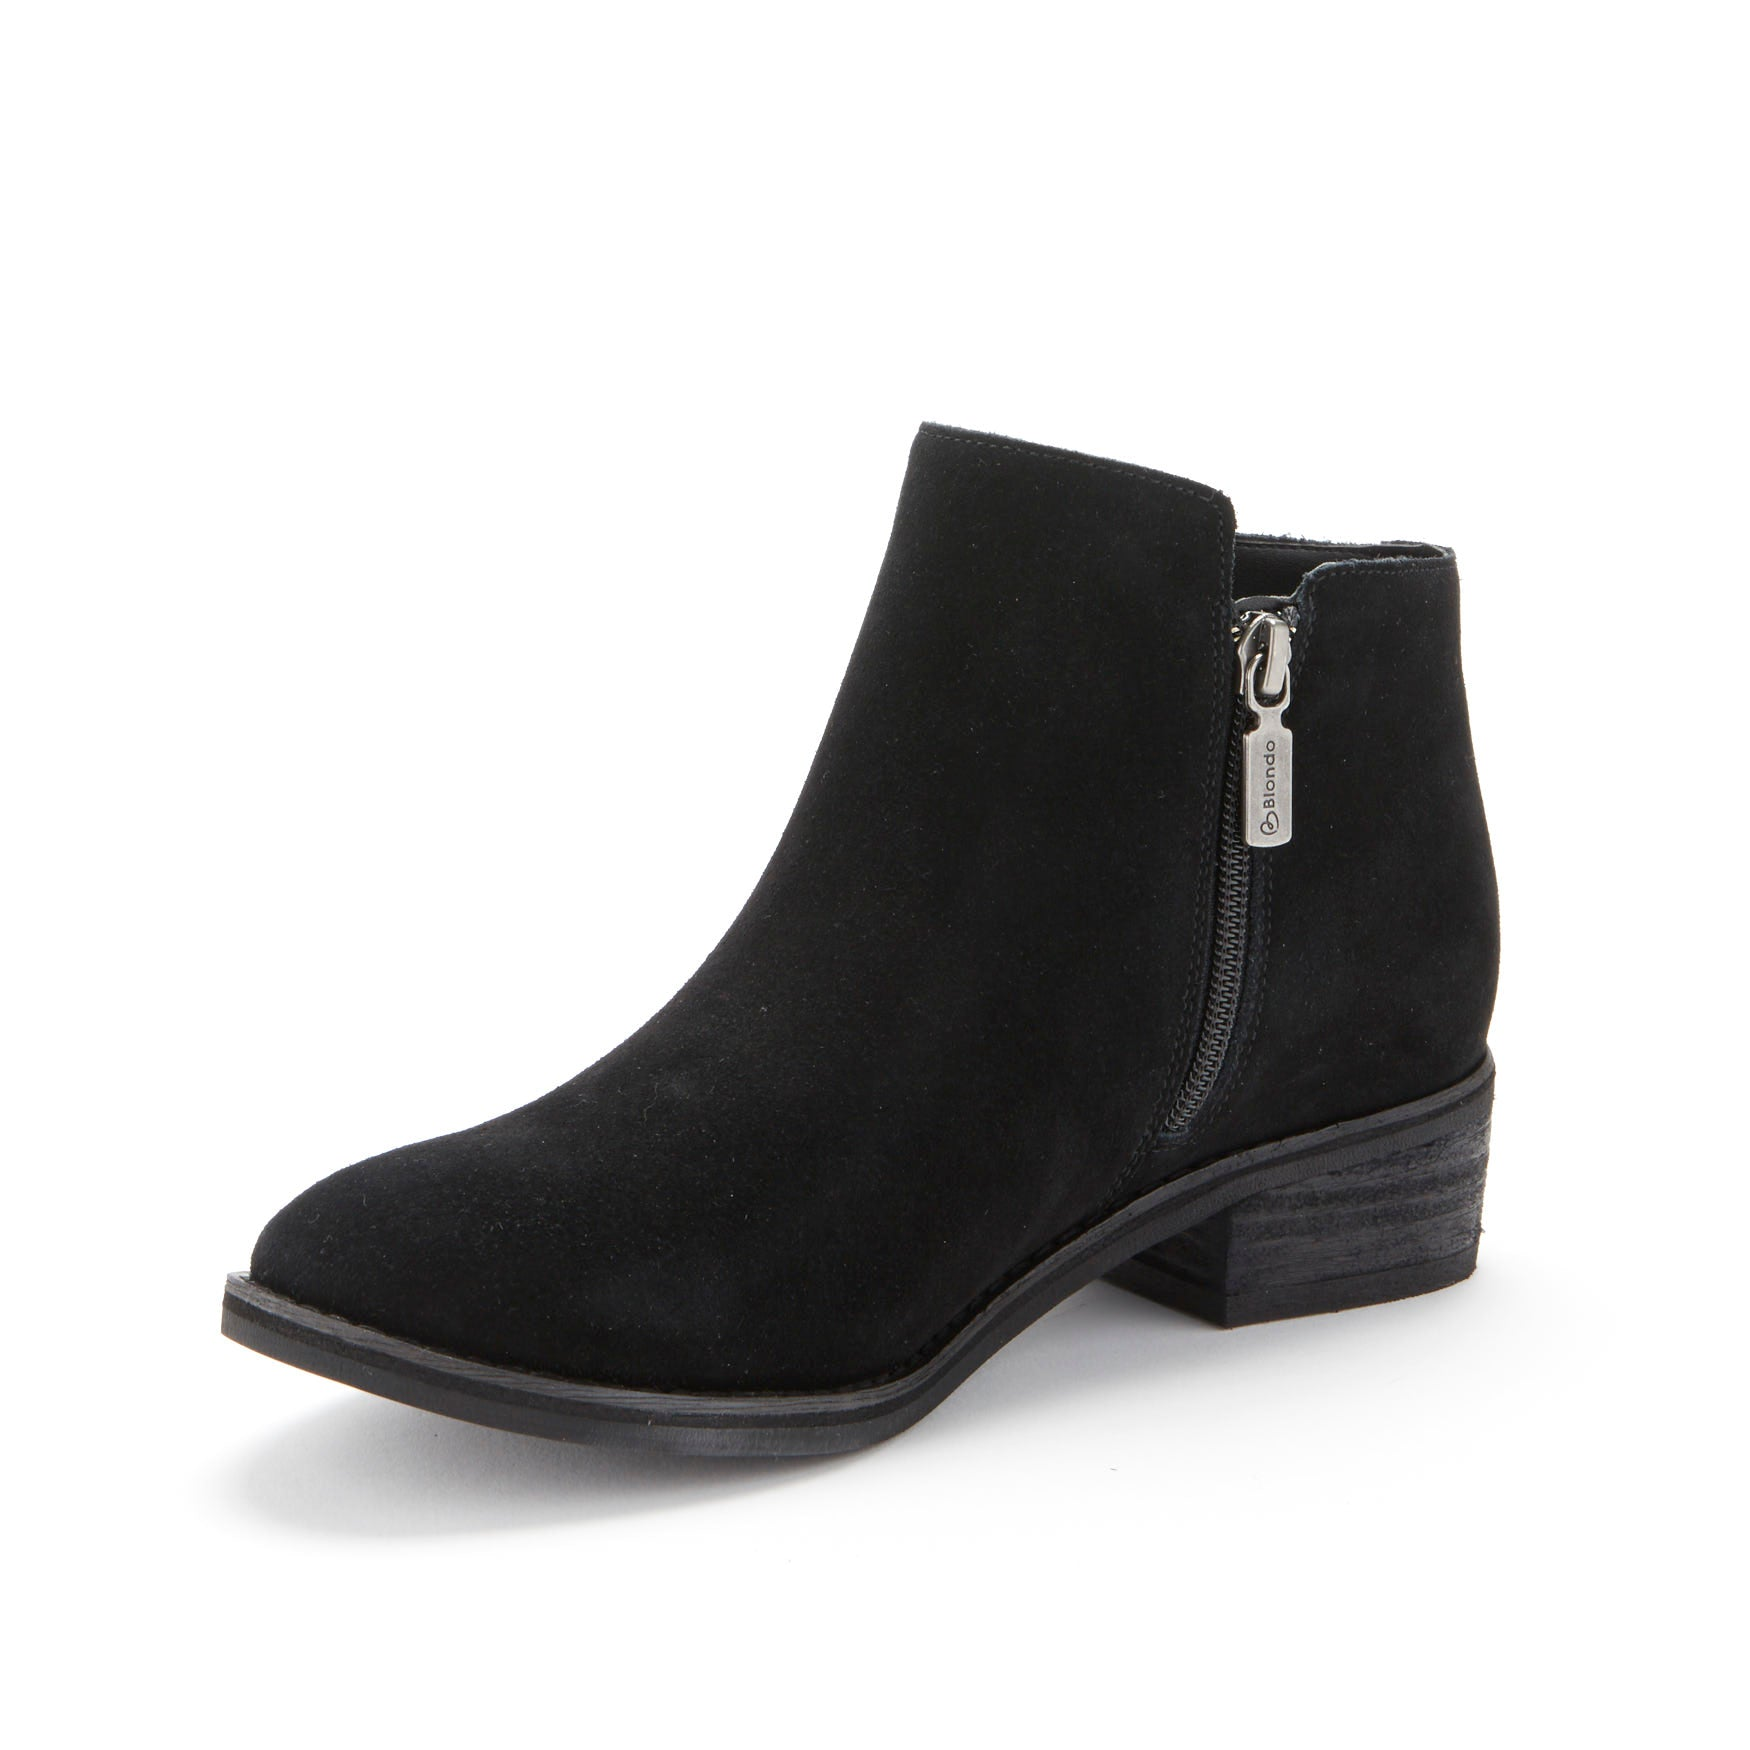 The Twin-Zip Ankle Bootie in Black